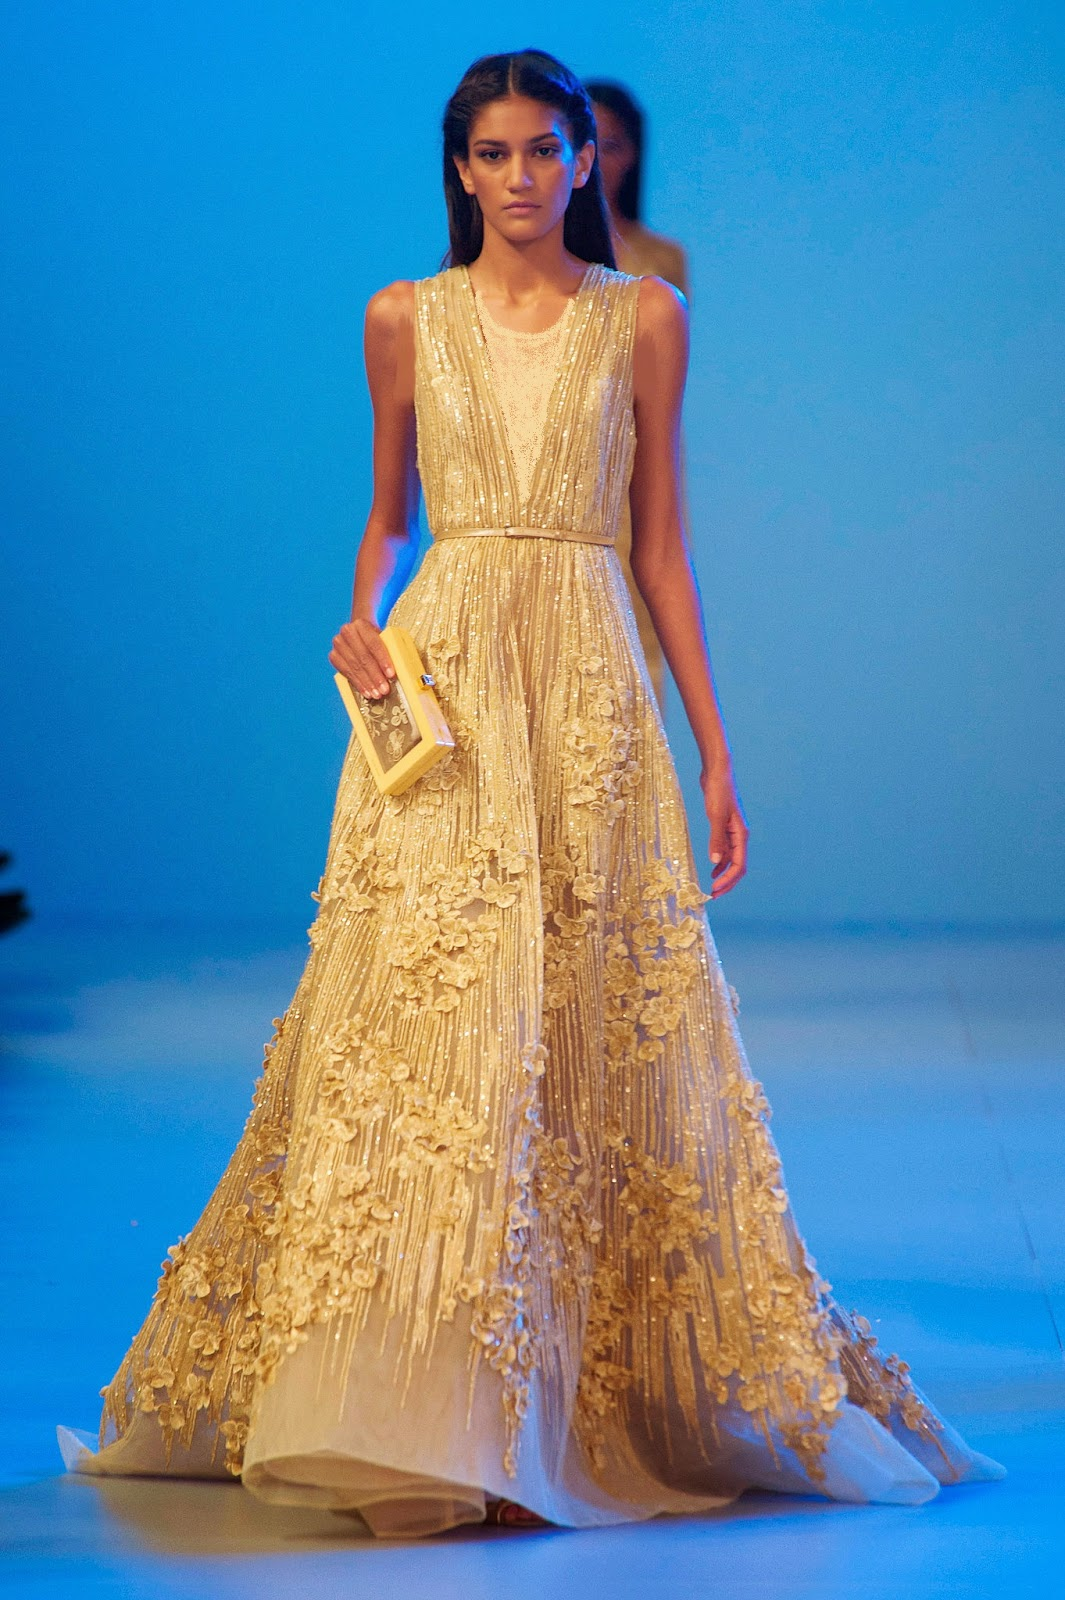 elie saab haute couture spring collection 2014 pakistani